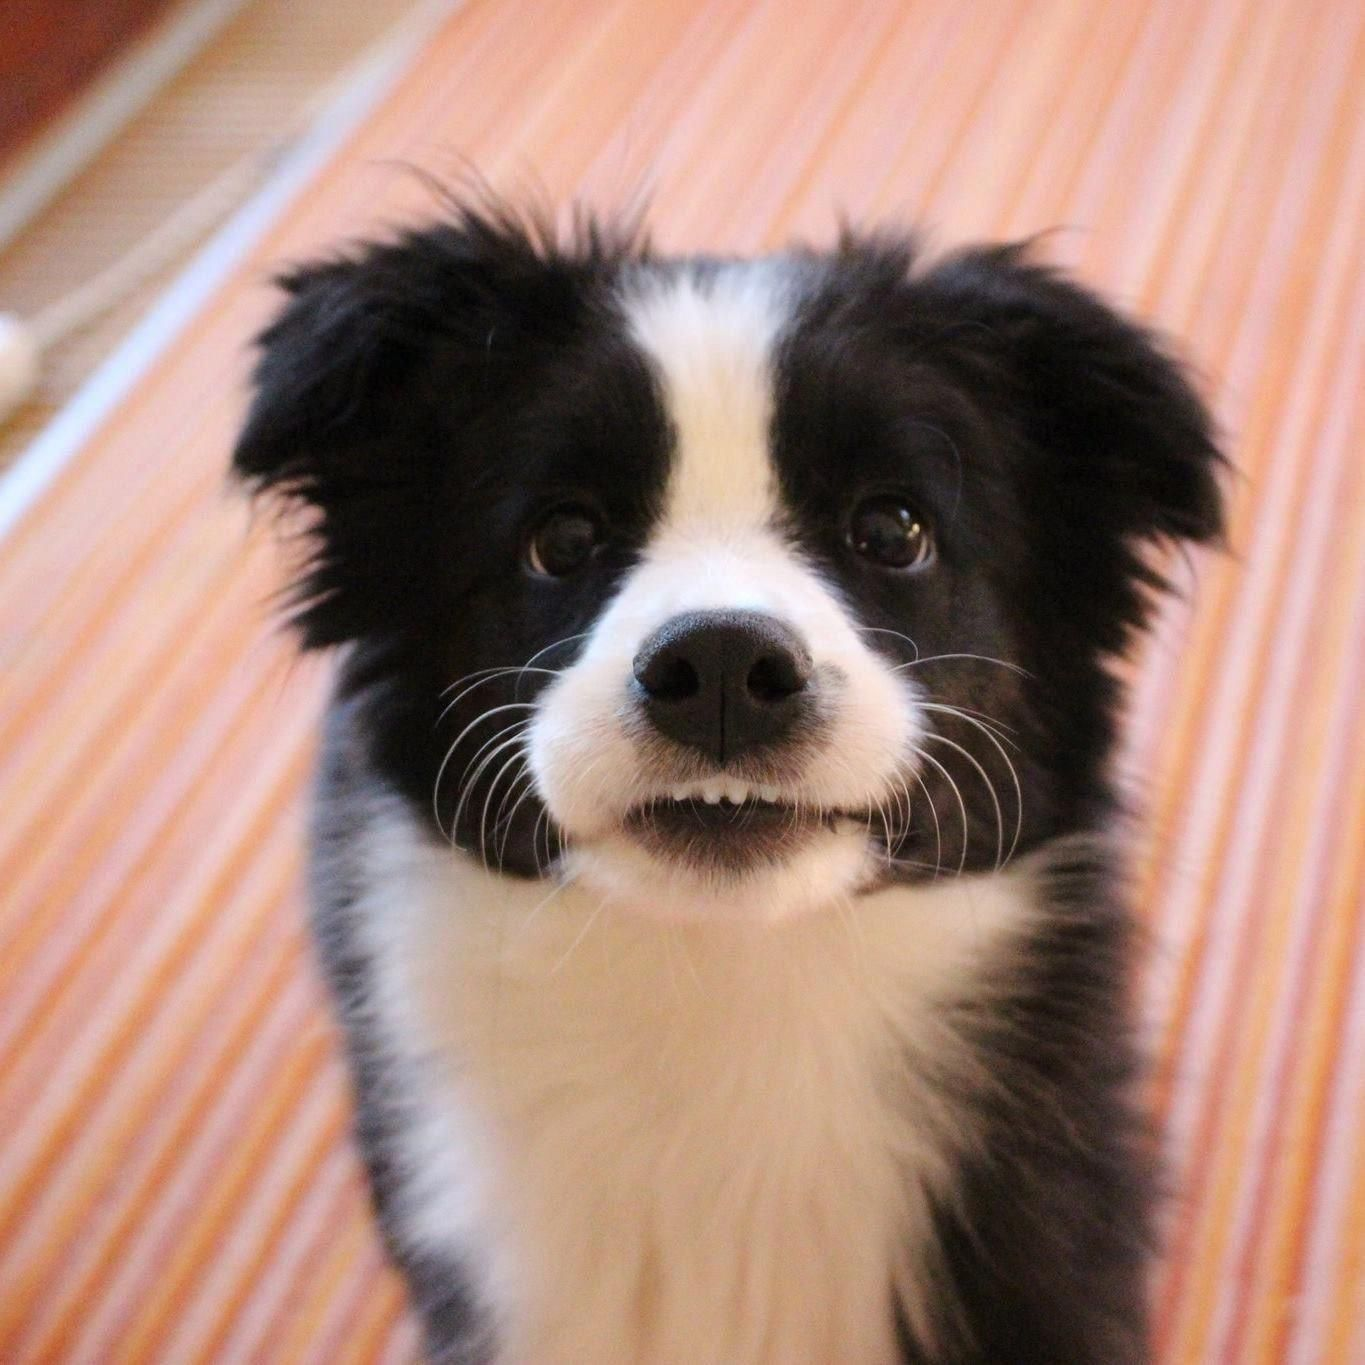 Amy The Border Collie Do You Love Cute Dogs Like This Follow Our Petsdope Pinterest Account To See Other Cute P In 2020 Cute Baby Animals Cute Animals Cute Dogs